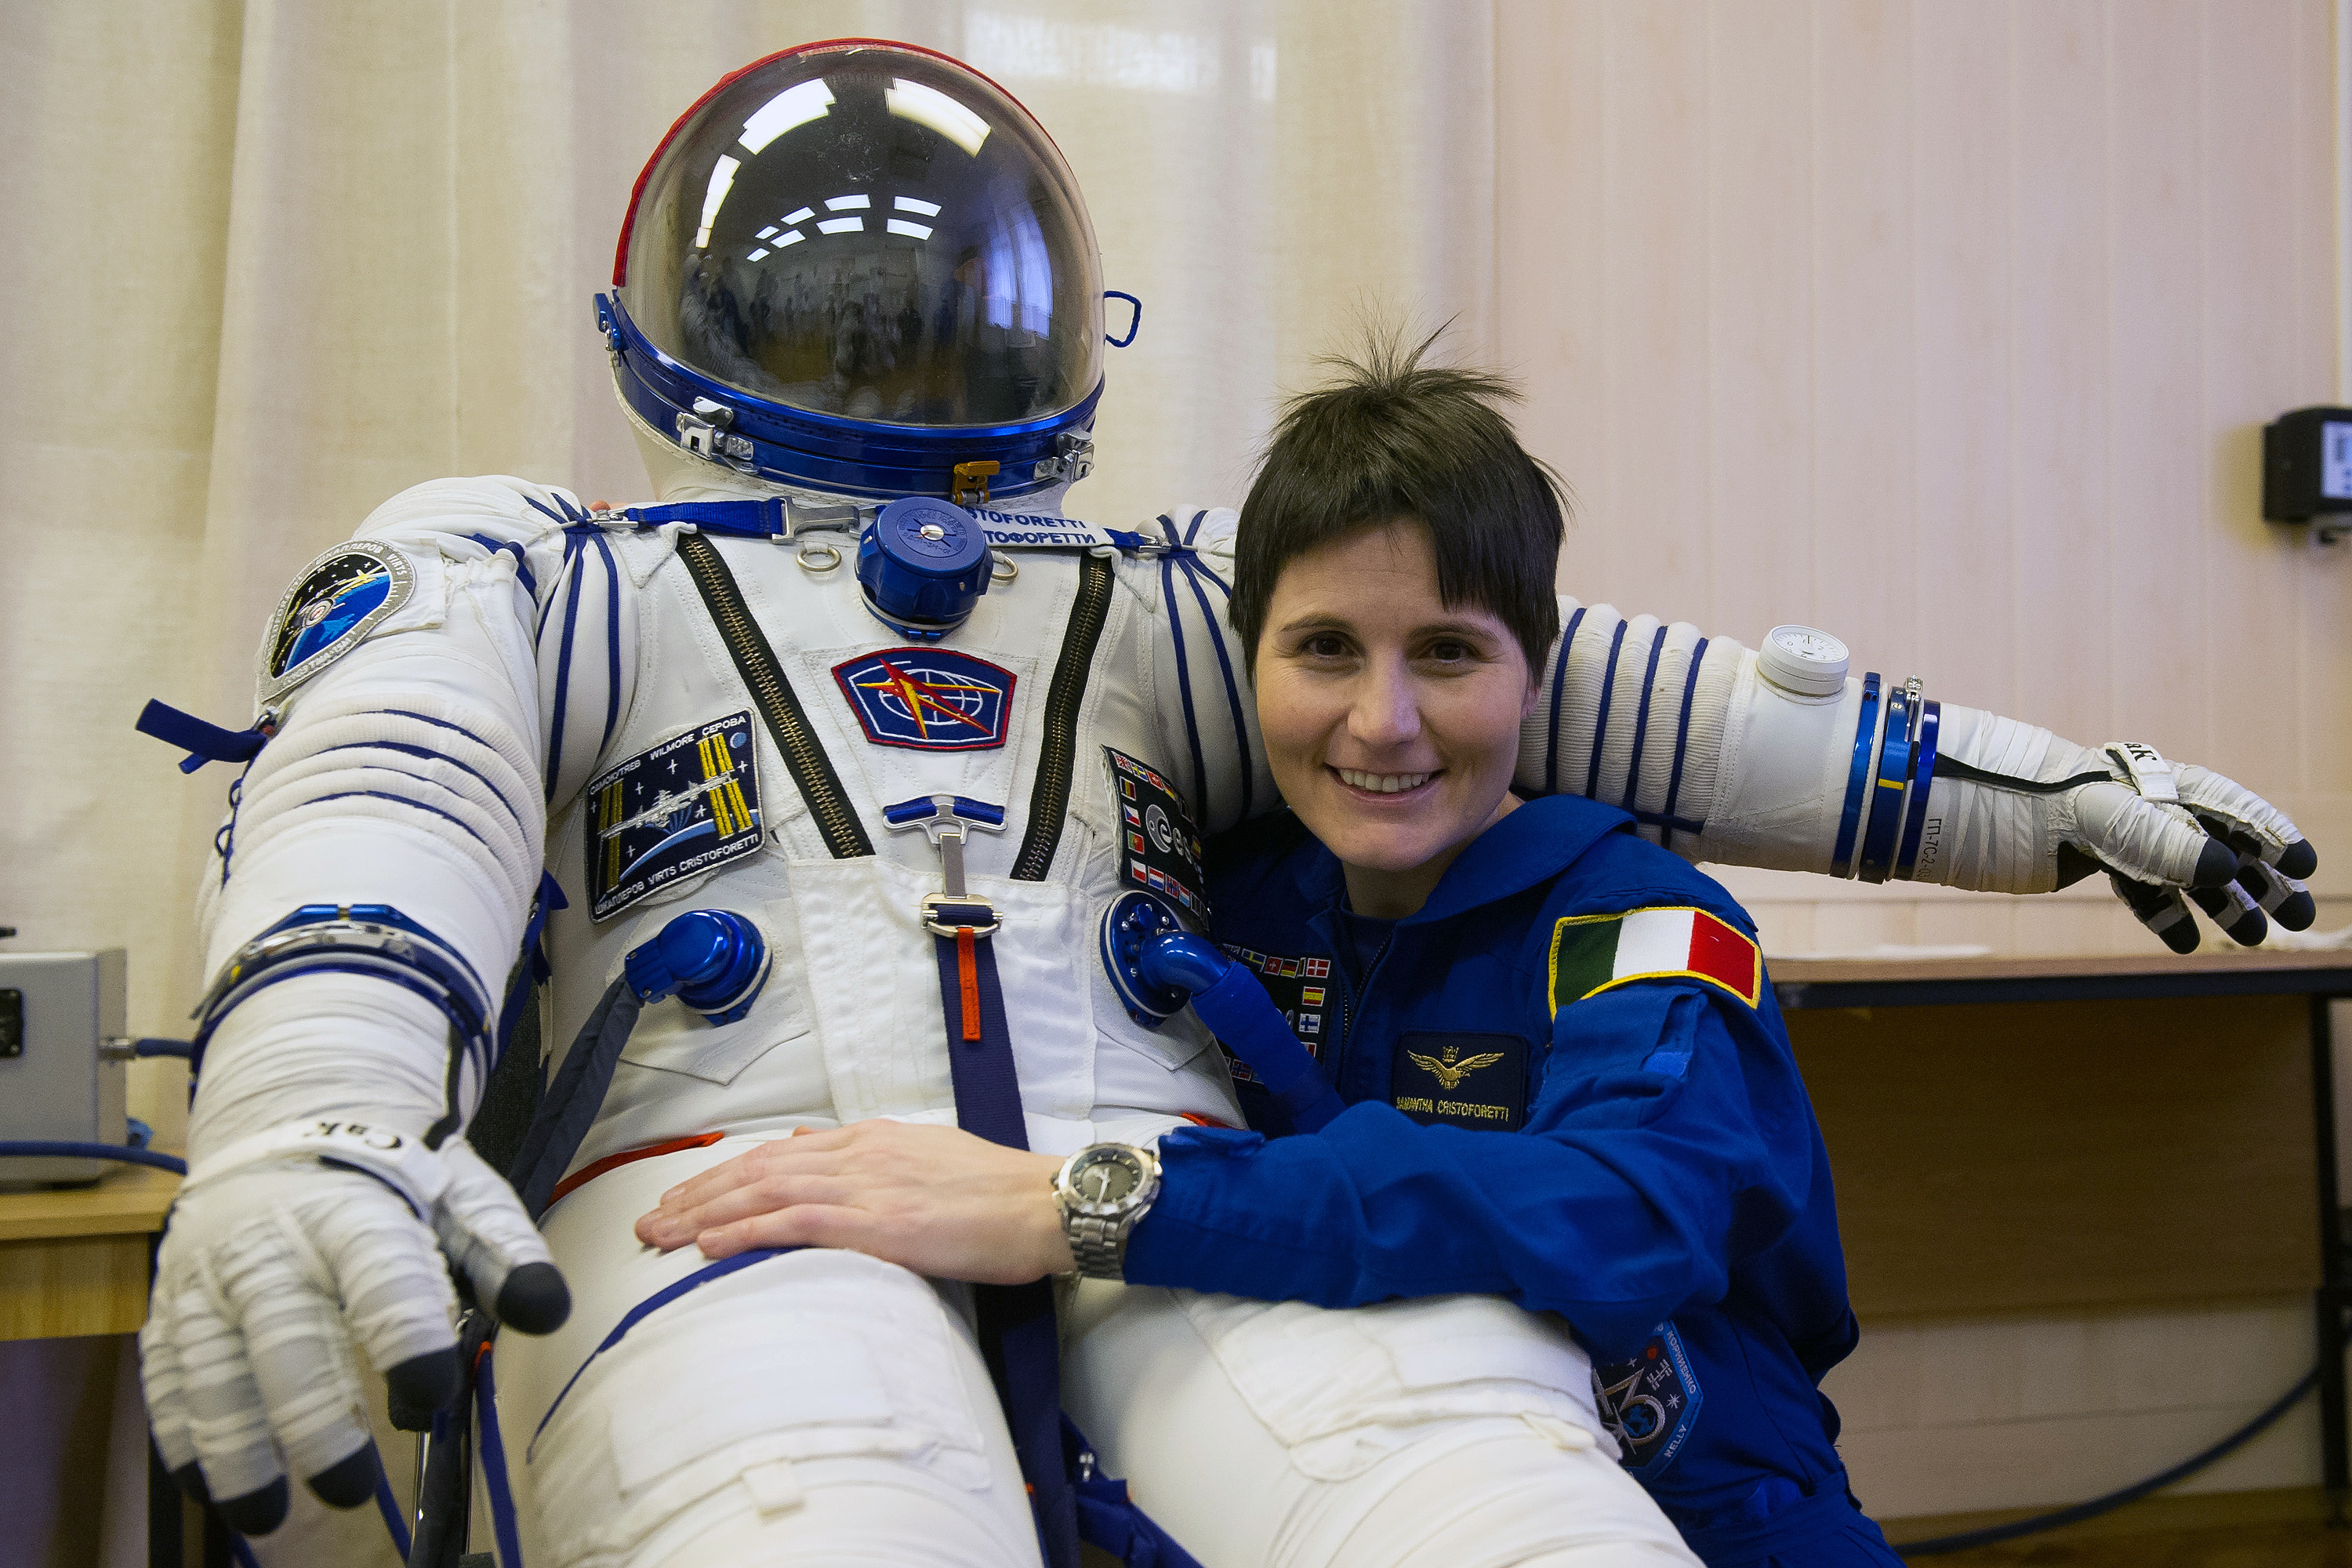 an astronaut in her space suit weighs 300 - photo #41